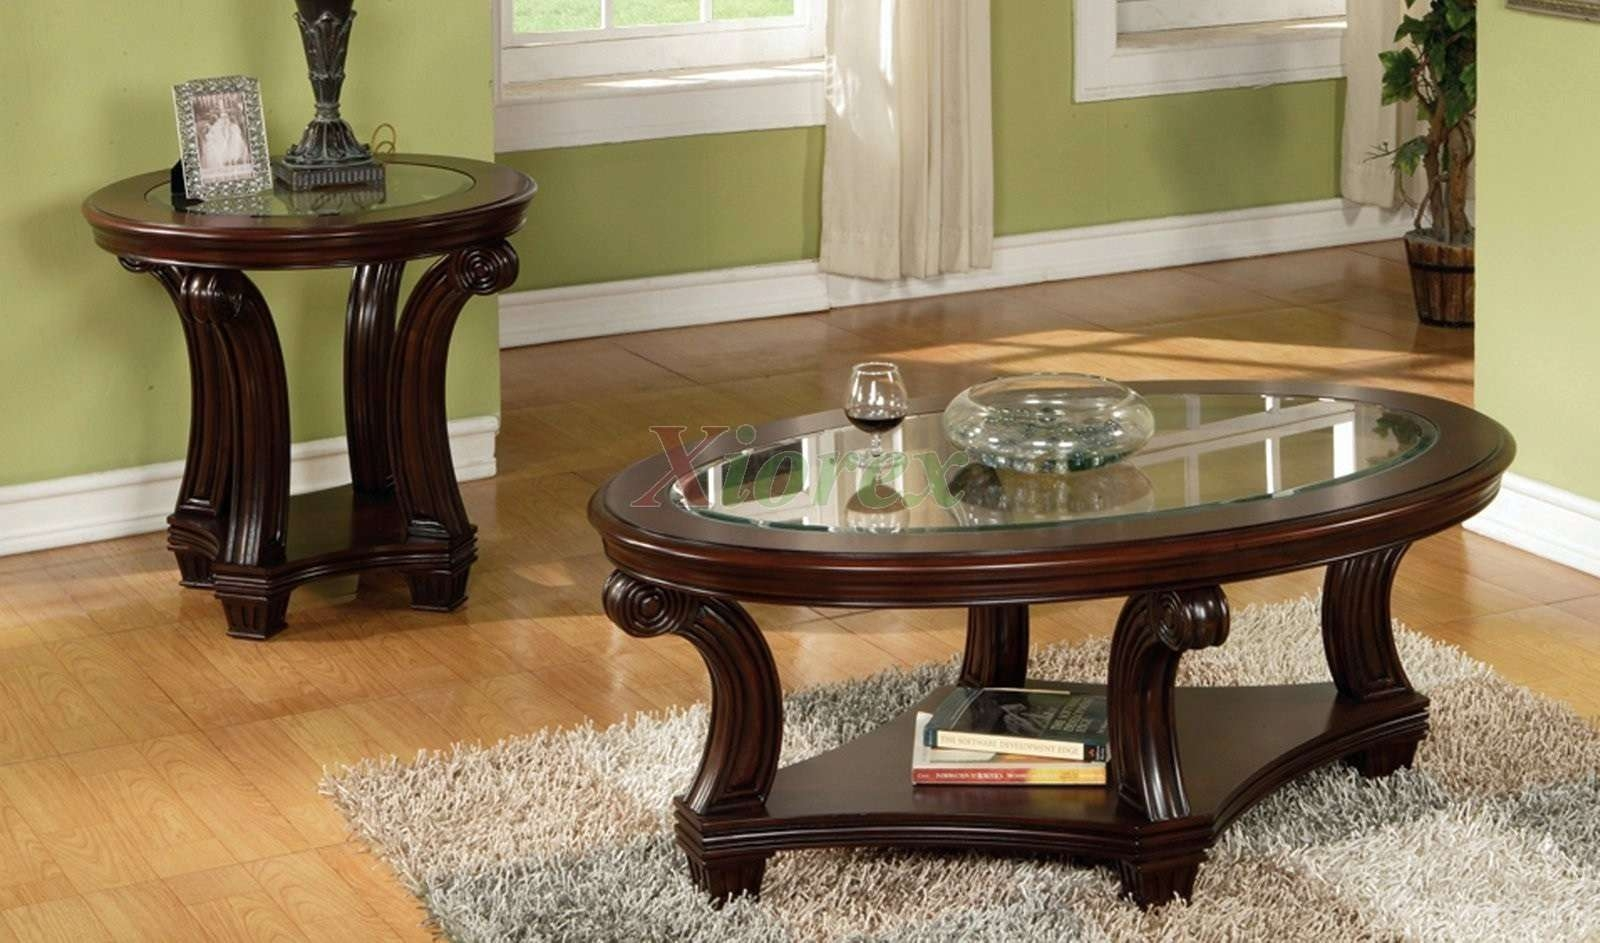 Current Dark Wood Coffee Tables Within Dark Wood Coffee Table With Glass Top – Brown Shag Rugs, Storage (View 20 of 20)